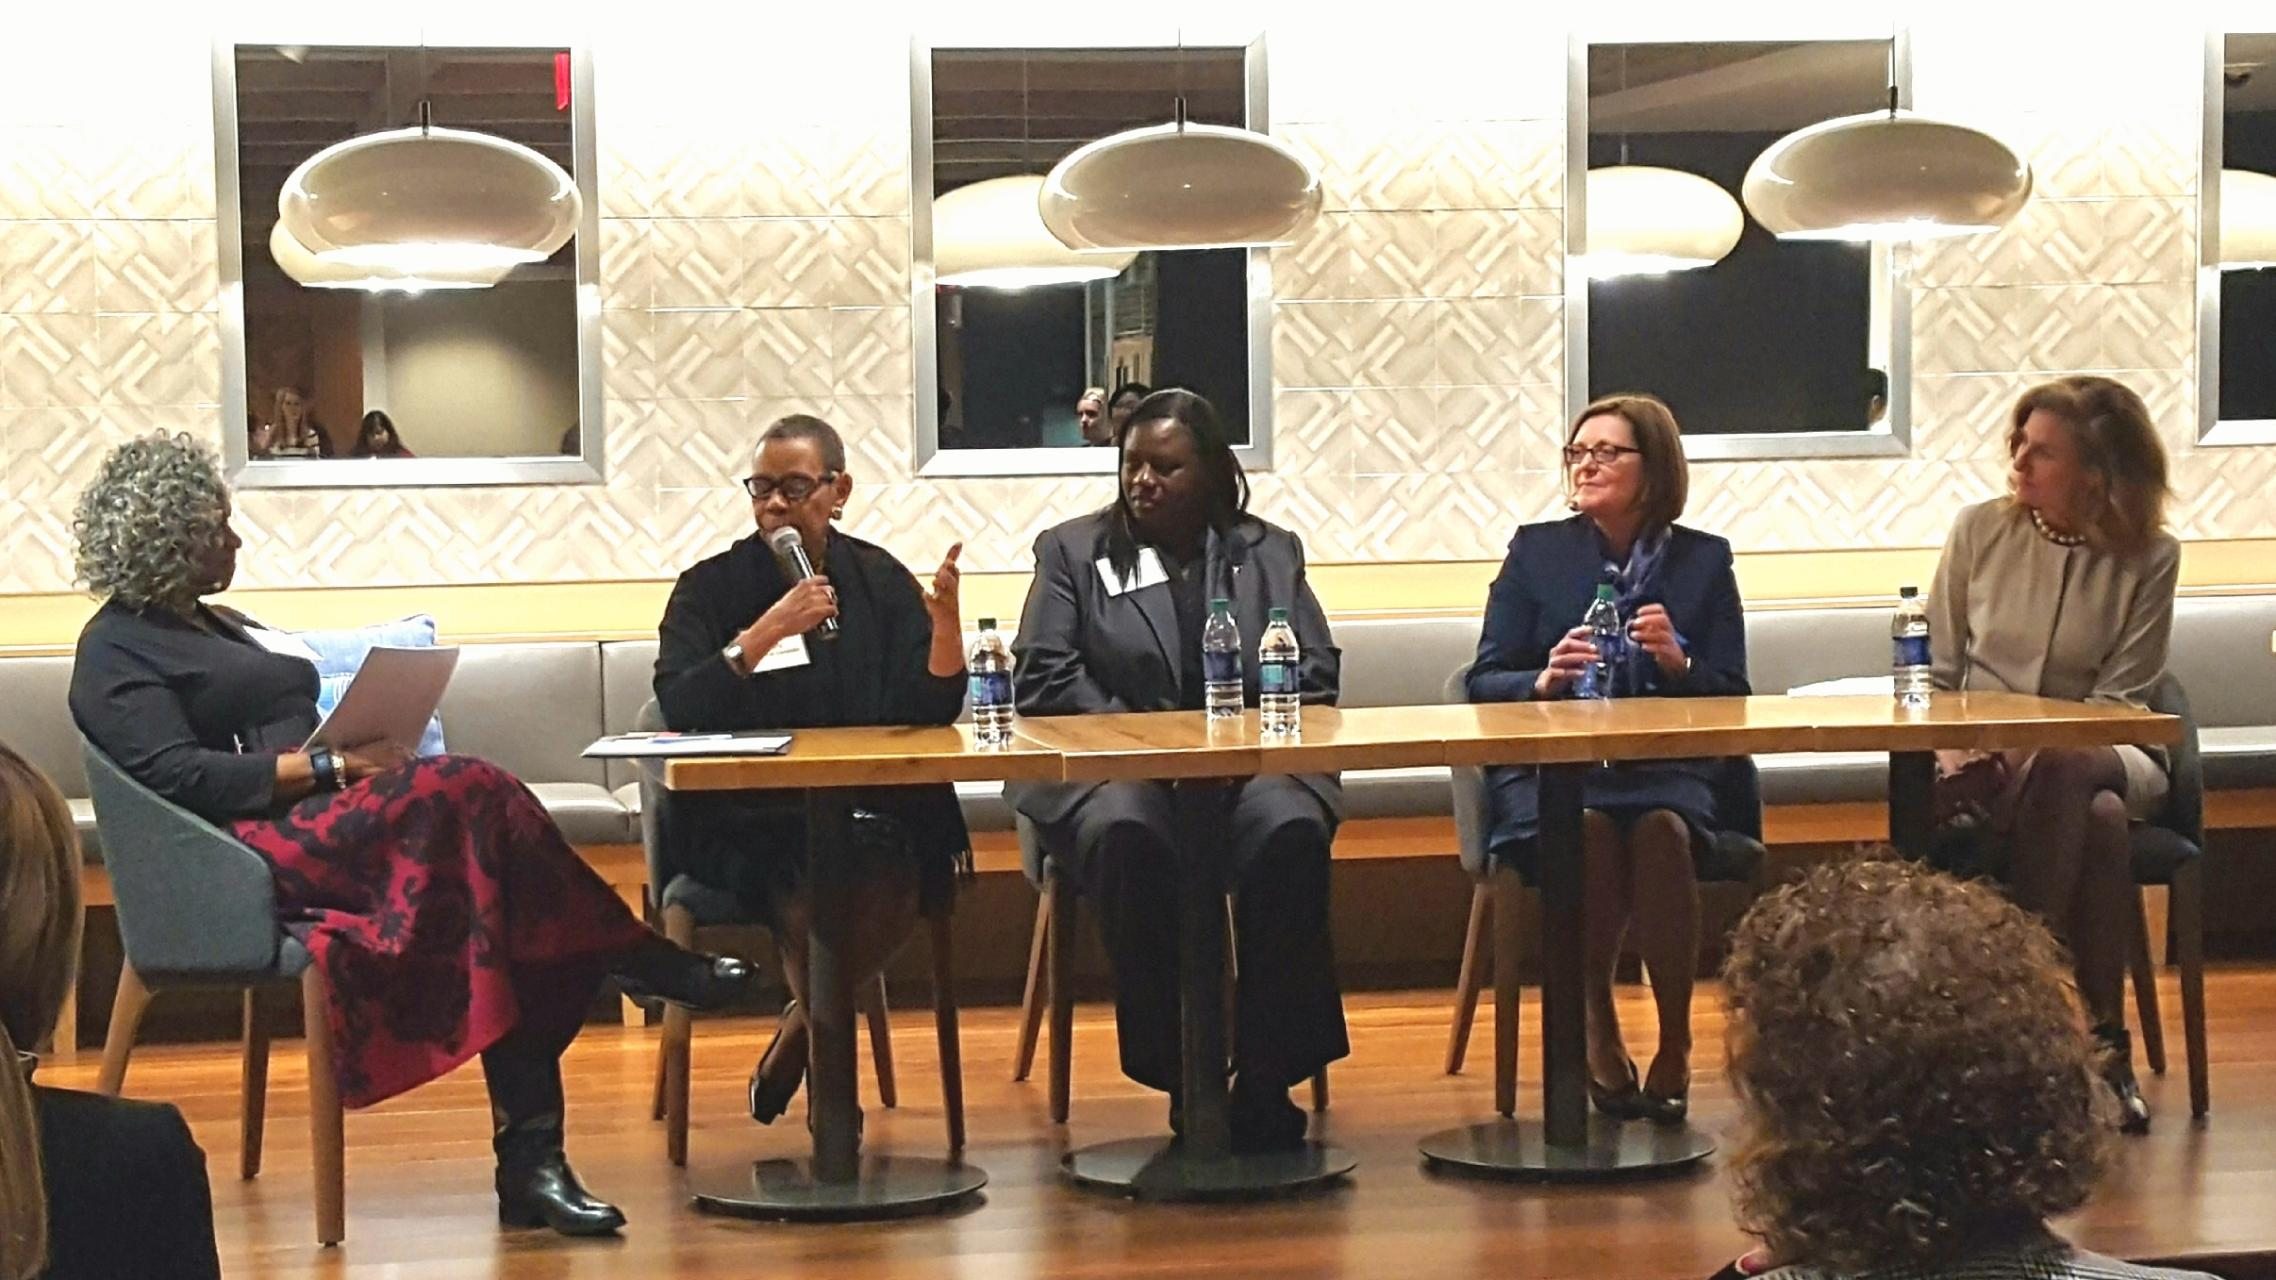 Monica Pearson, Moderator, with College Presidents Mary Schmidt-Campbell, Victoria Seals, Claire Sterk, and Pamela Whitten